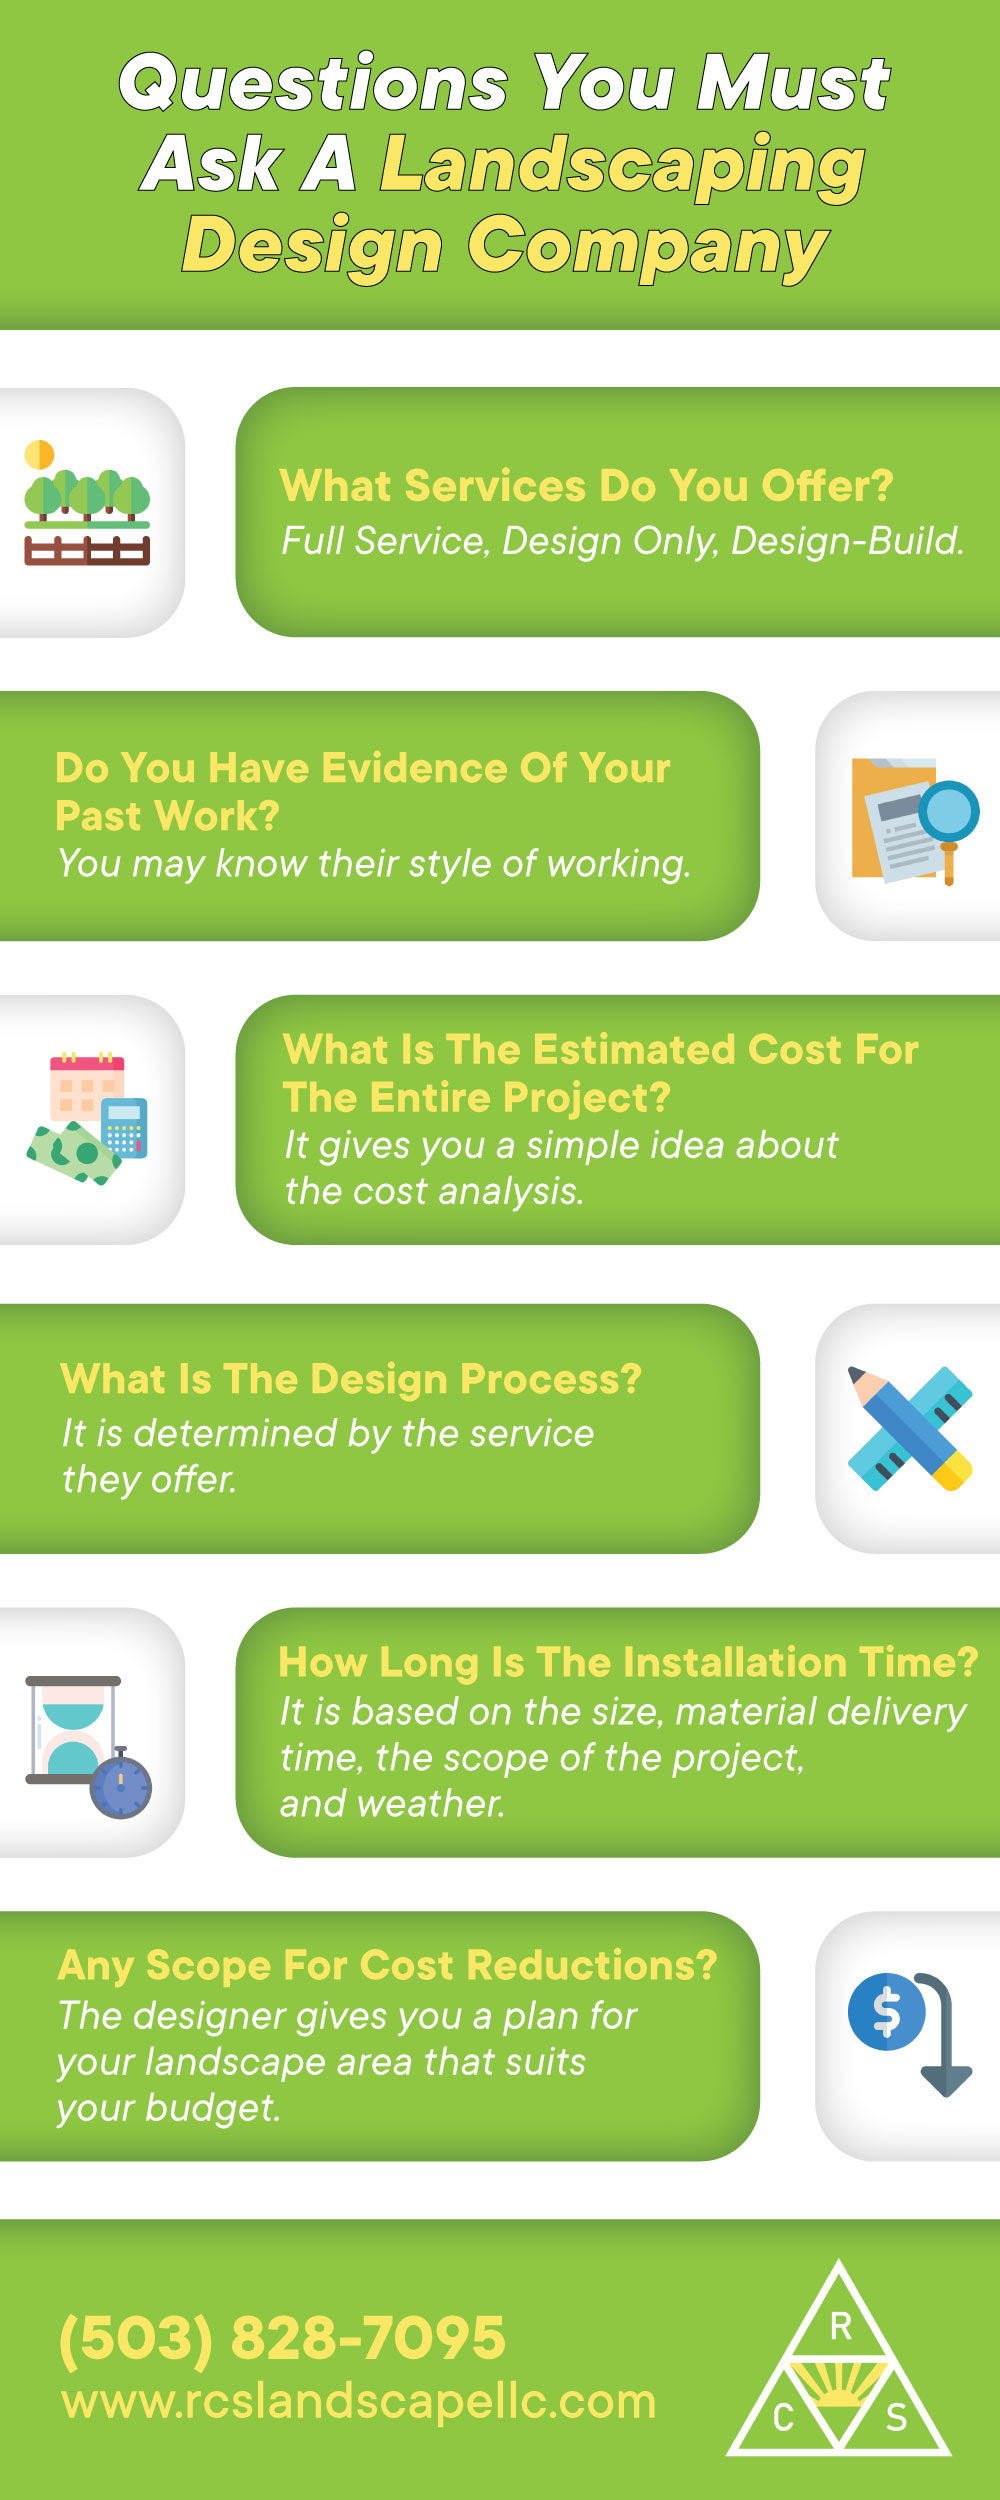 Questions You must Ask A Landscaping Design Company [Infographic]